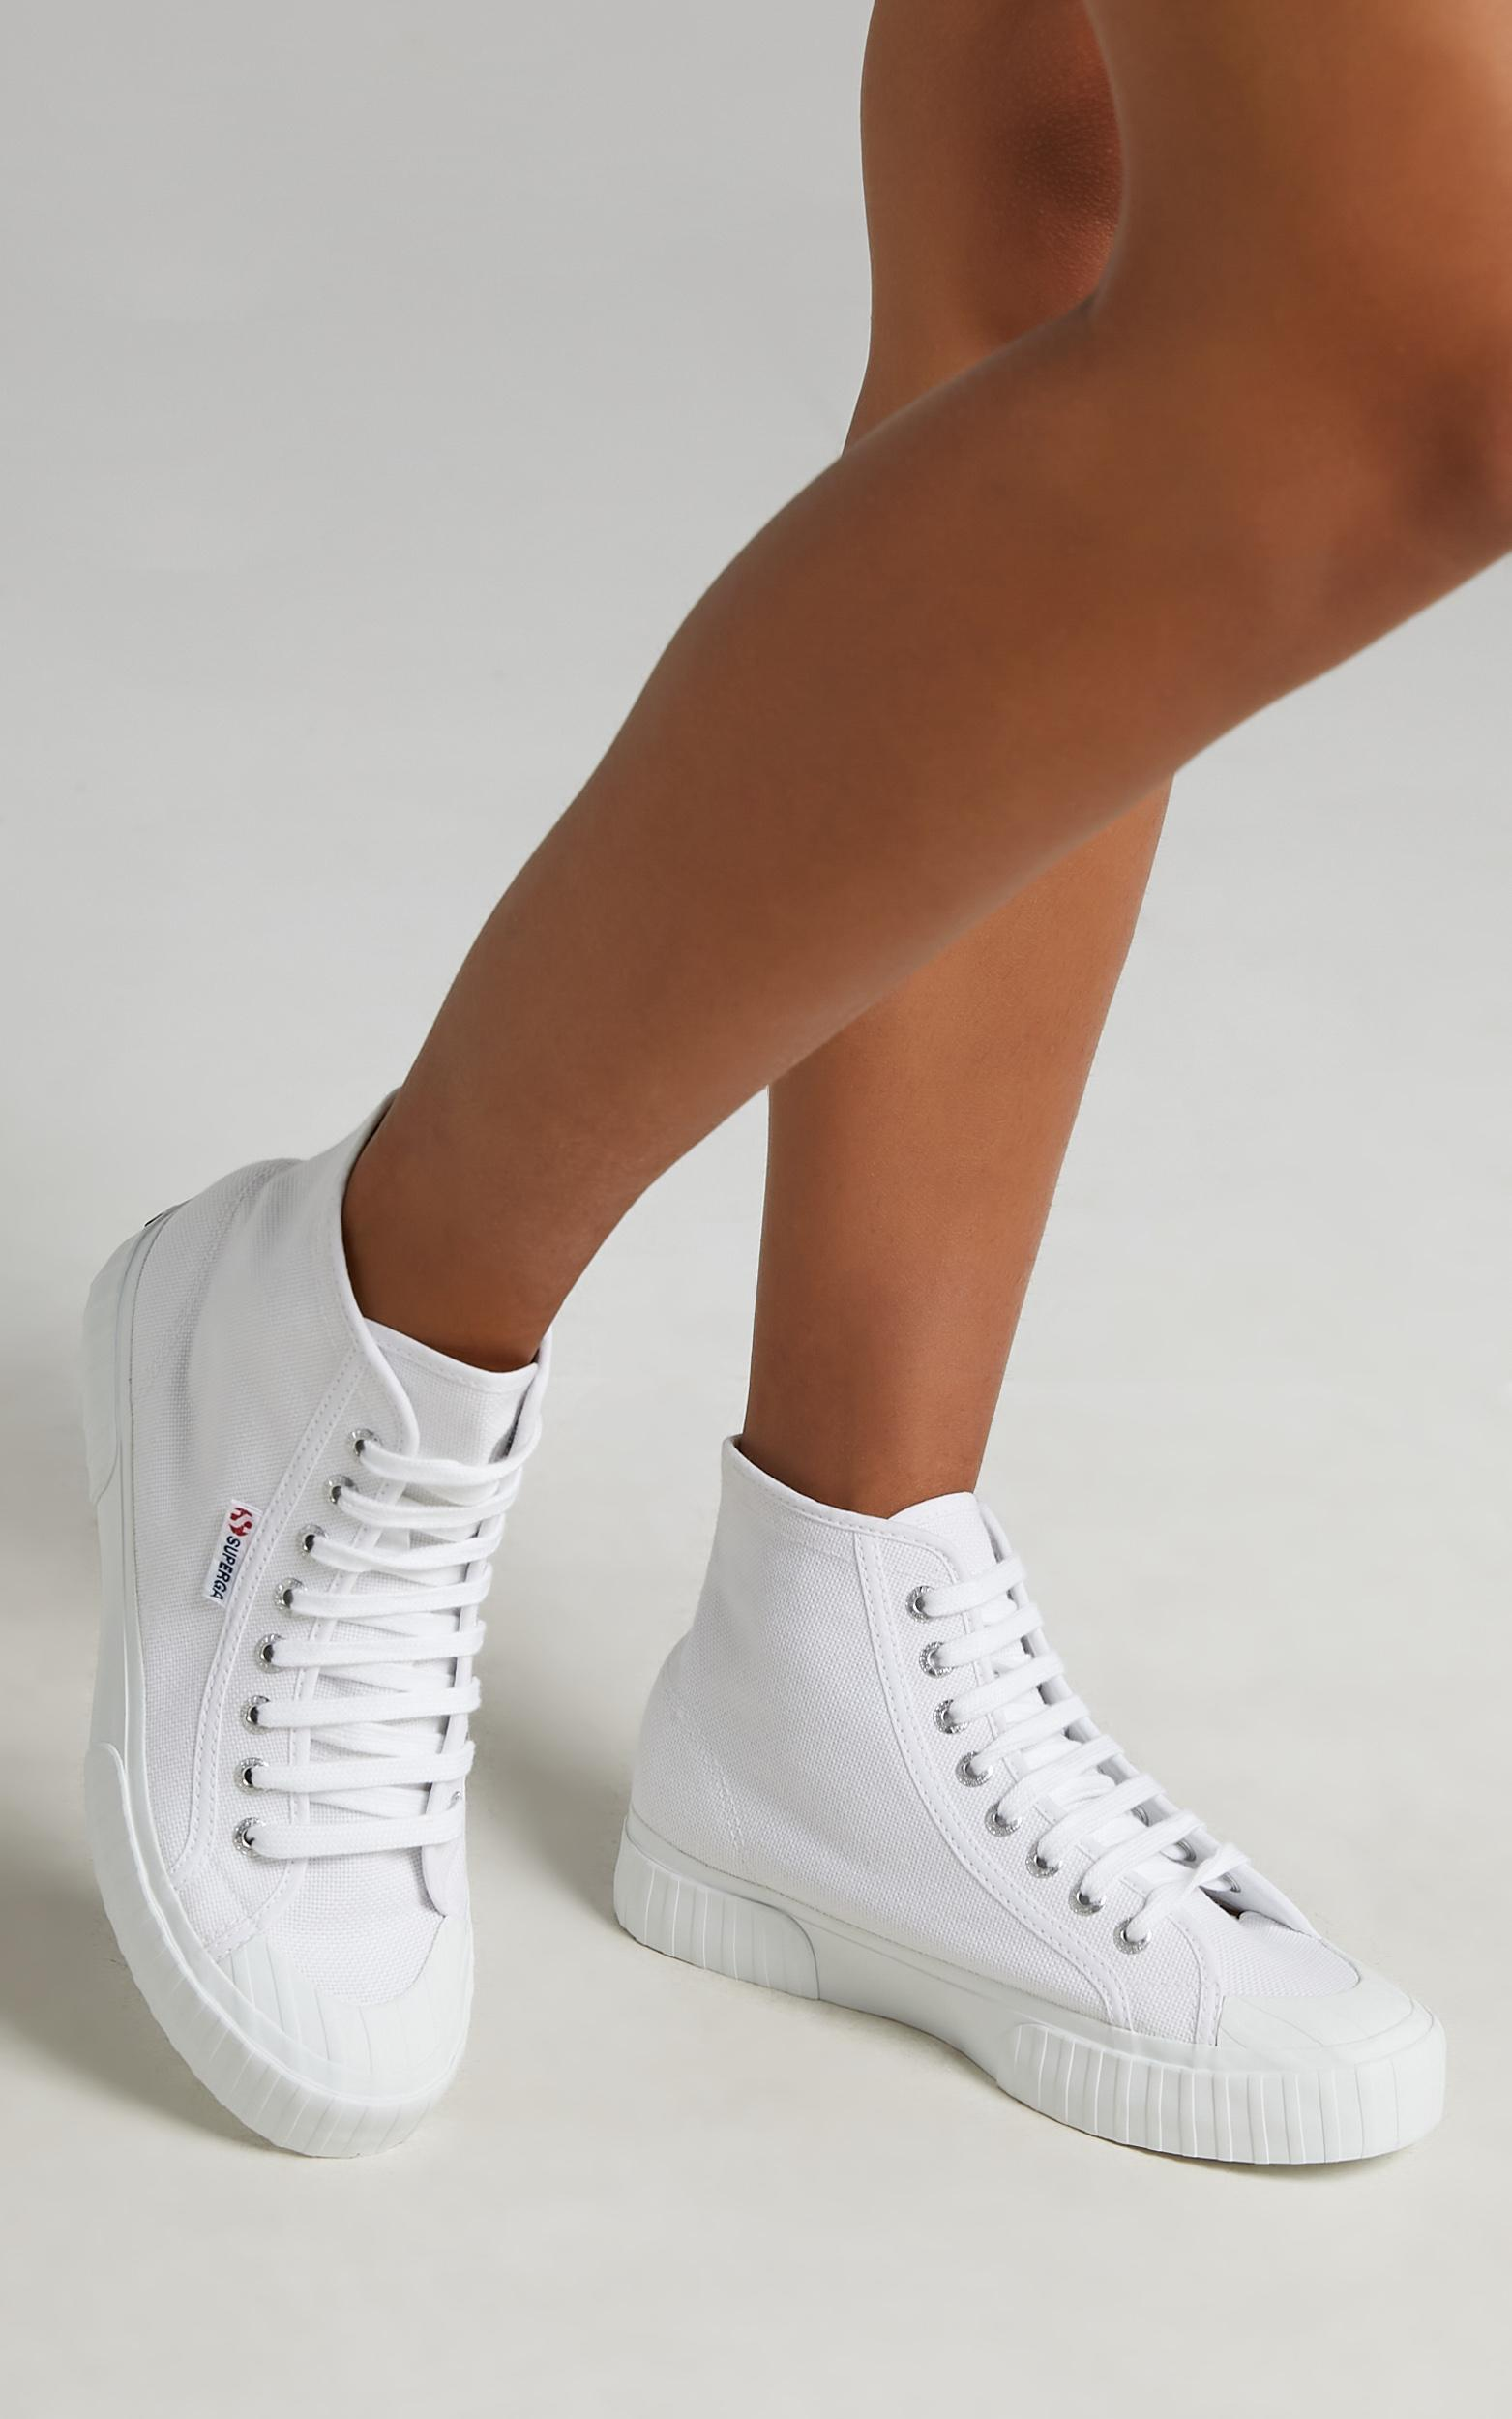 Superga - 2696 Stripe Sneakers in 901 White - 05, WHT1, hi-res image number null